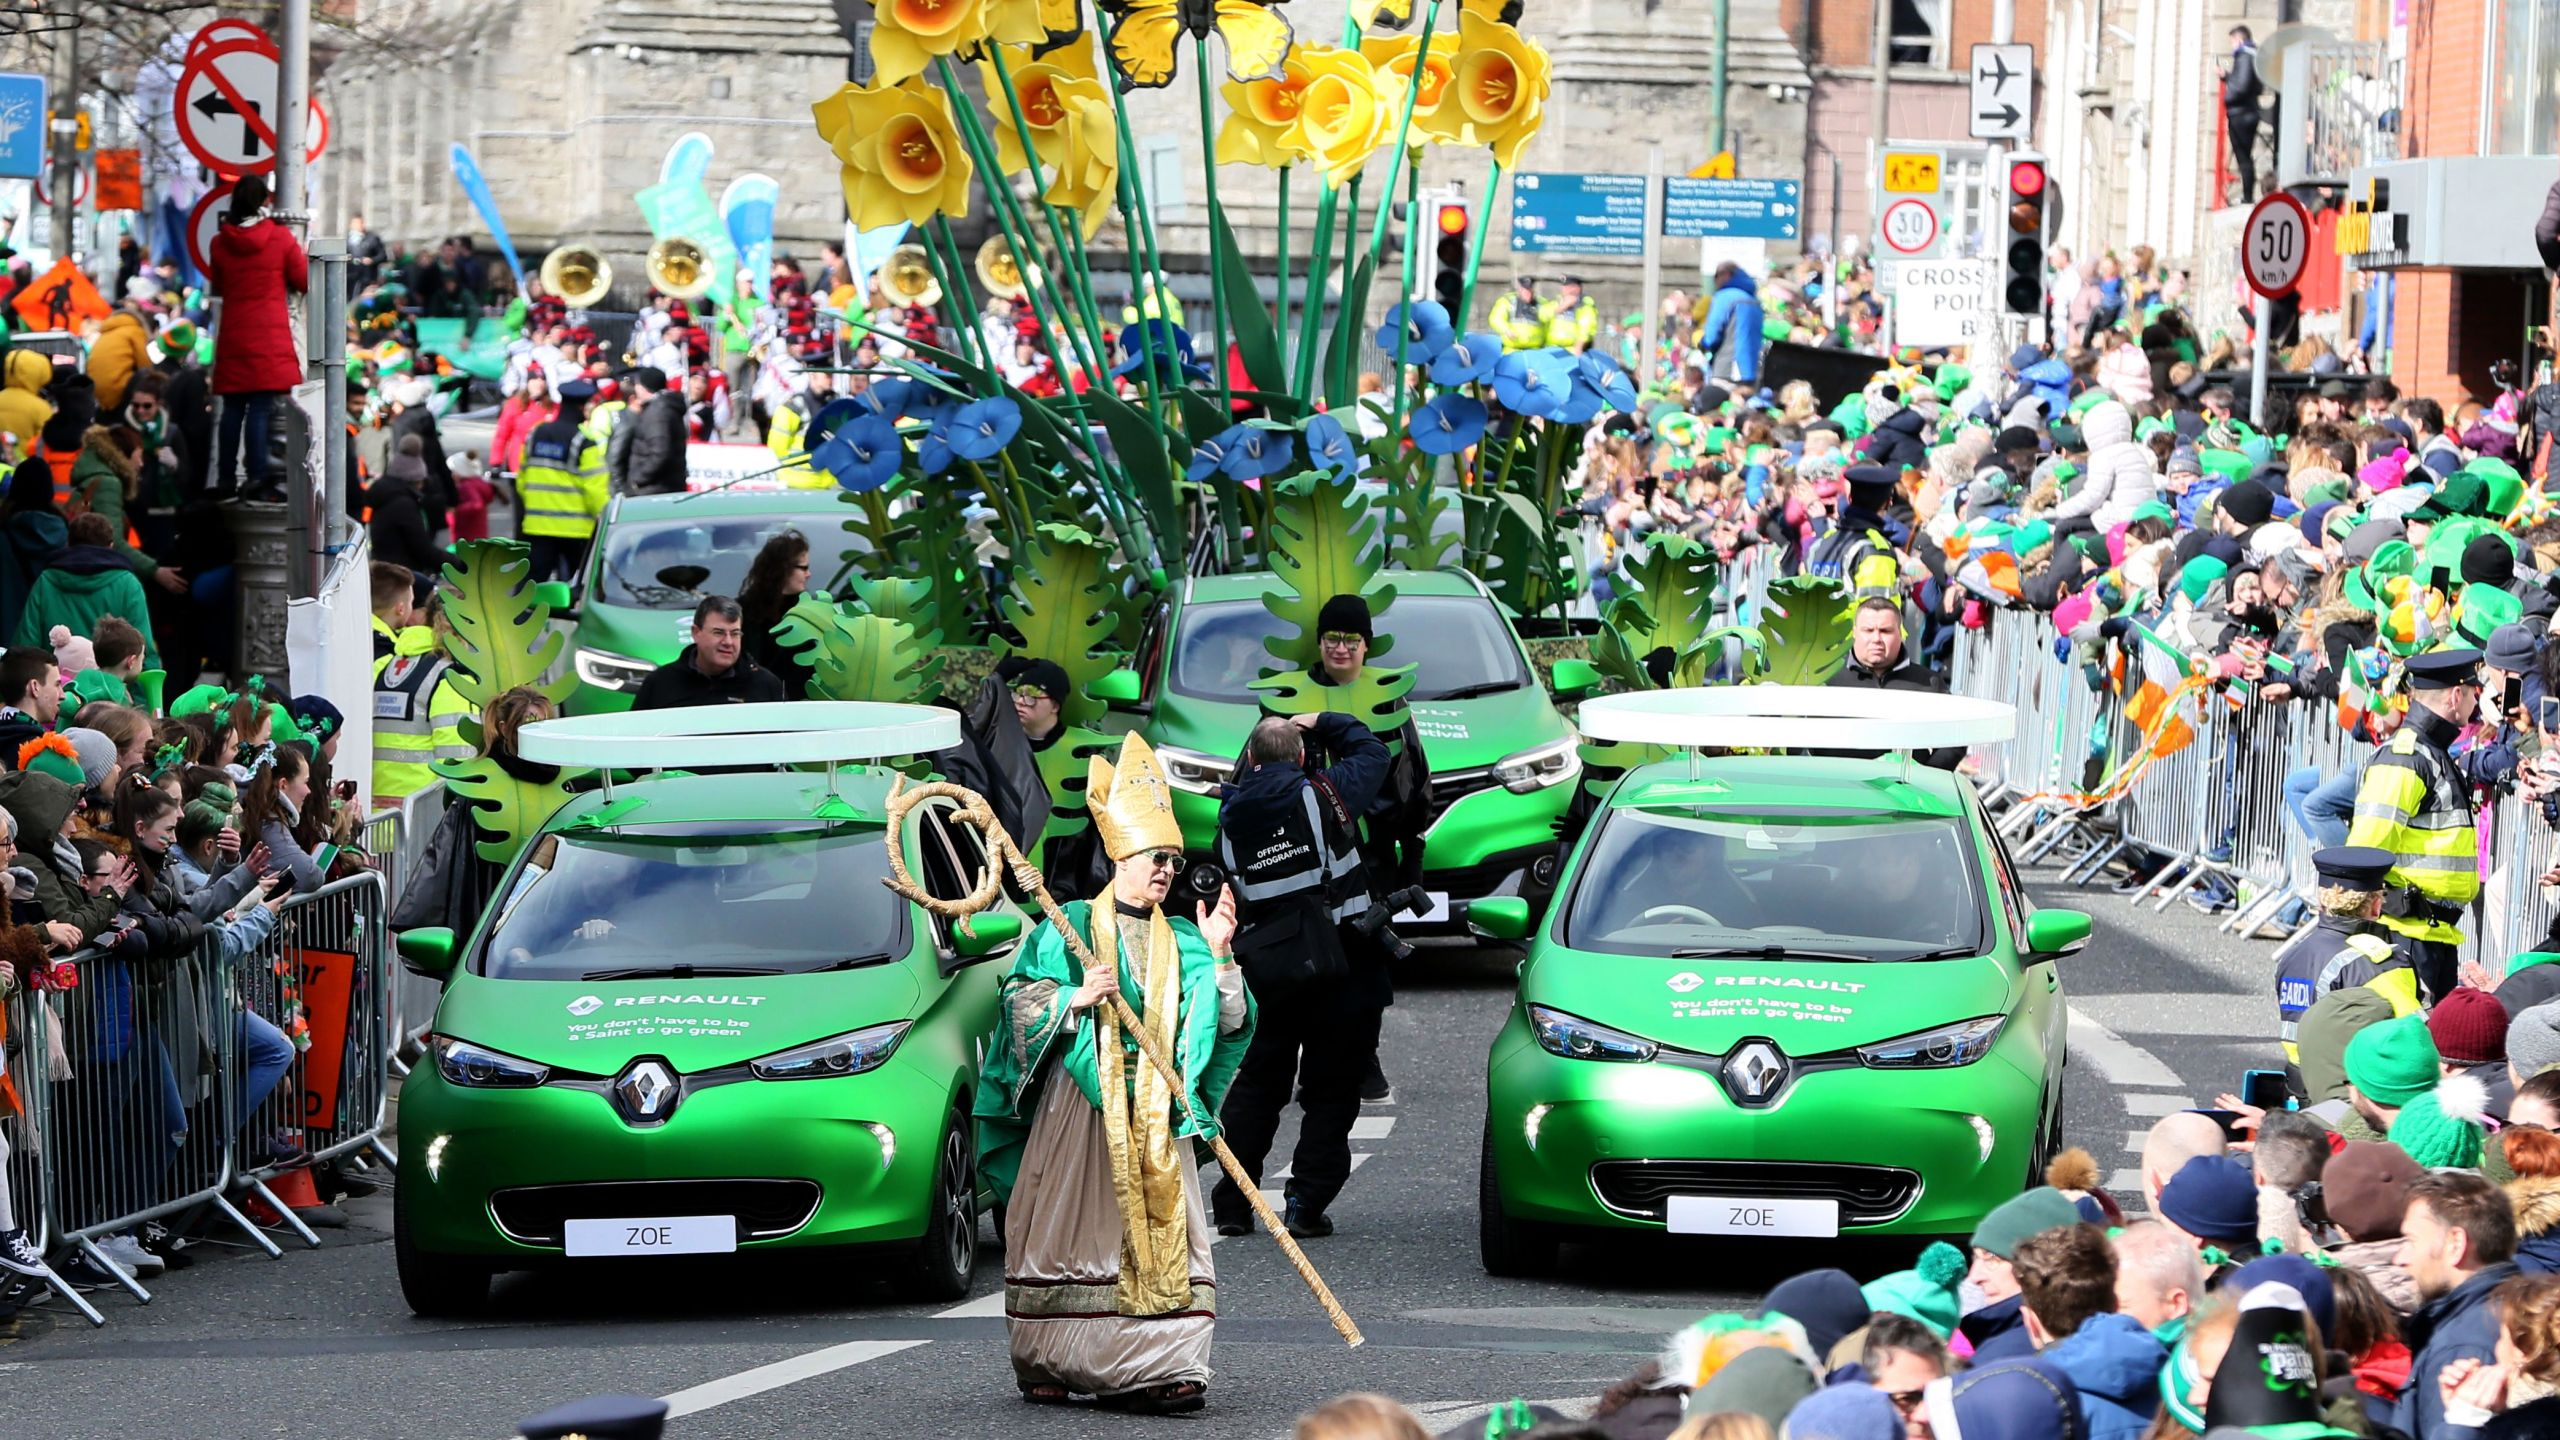 Ireland cancels St Patricks Day parades over coronavirus fears 2560x1440